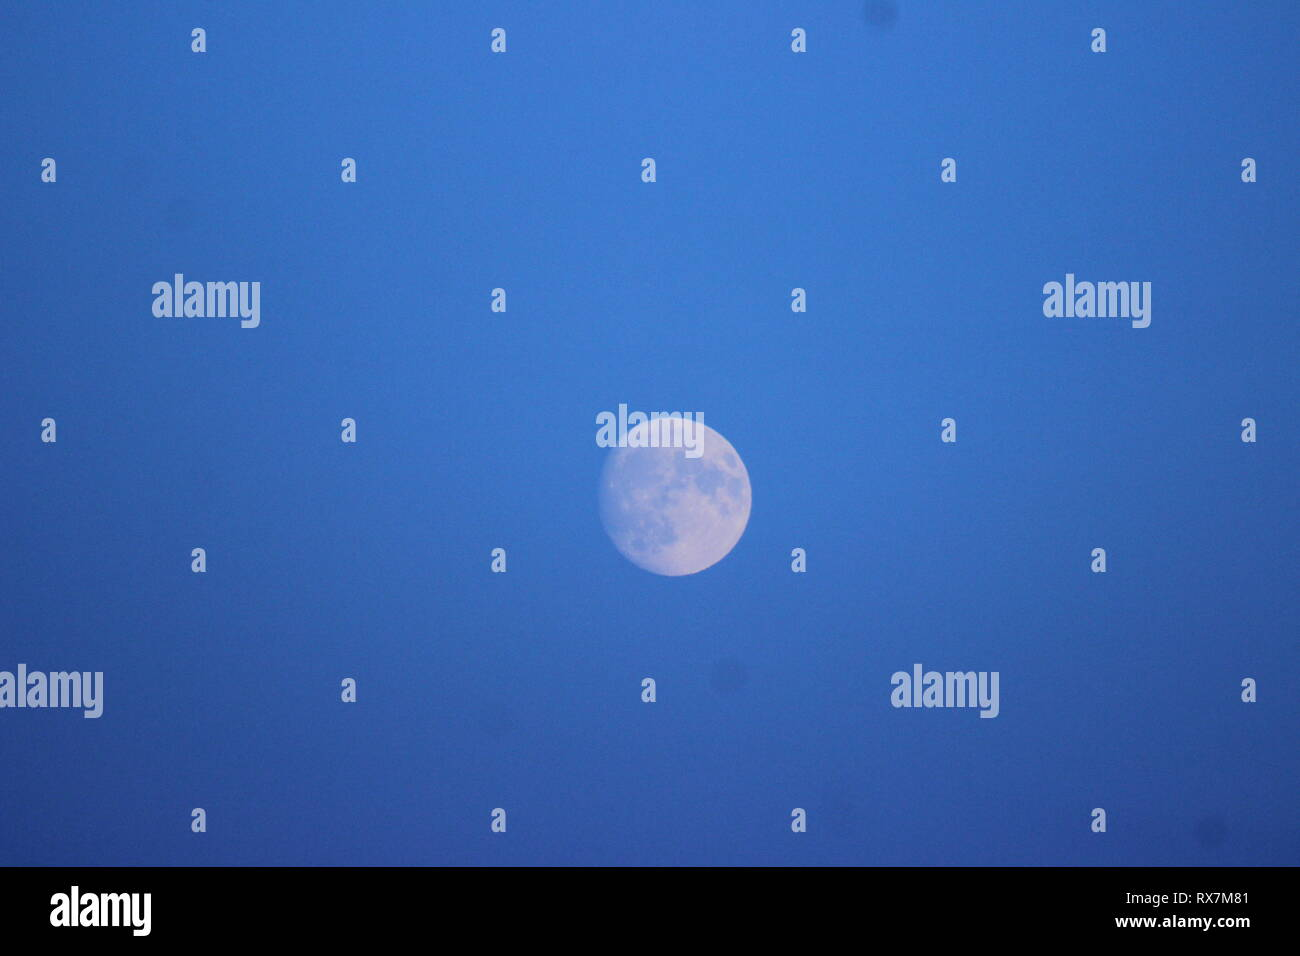 Evening Moon in the sky. - Stock Image